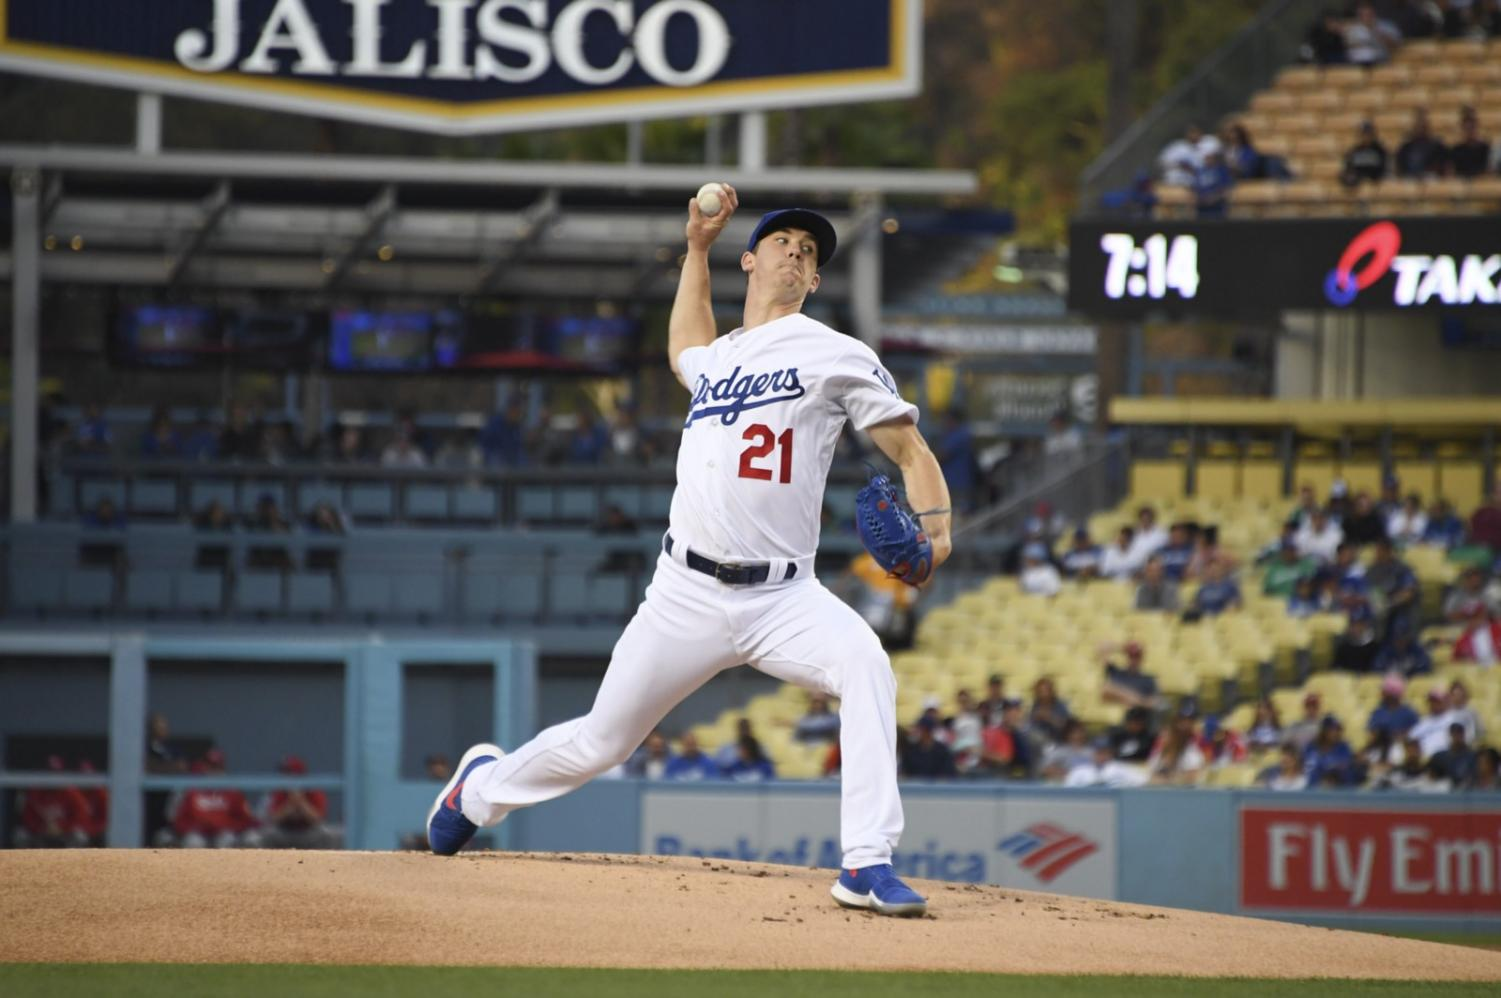 Los Angeles Dodgers' pitcher Walker Buehler pitched 6.0 innings and gave up two runs in a loss to the Cincinnati Reds (photo courtesy/Rowan Kavner).